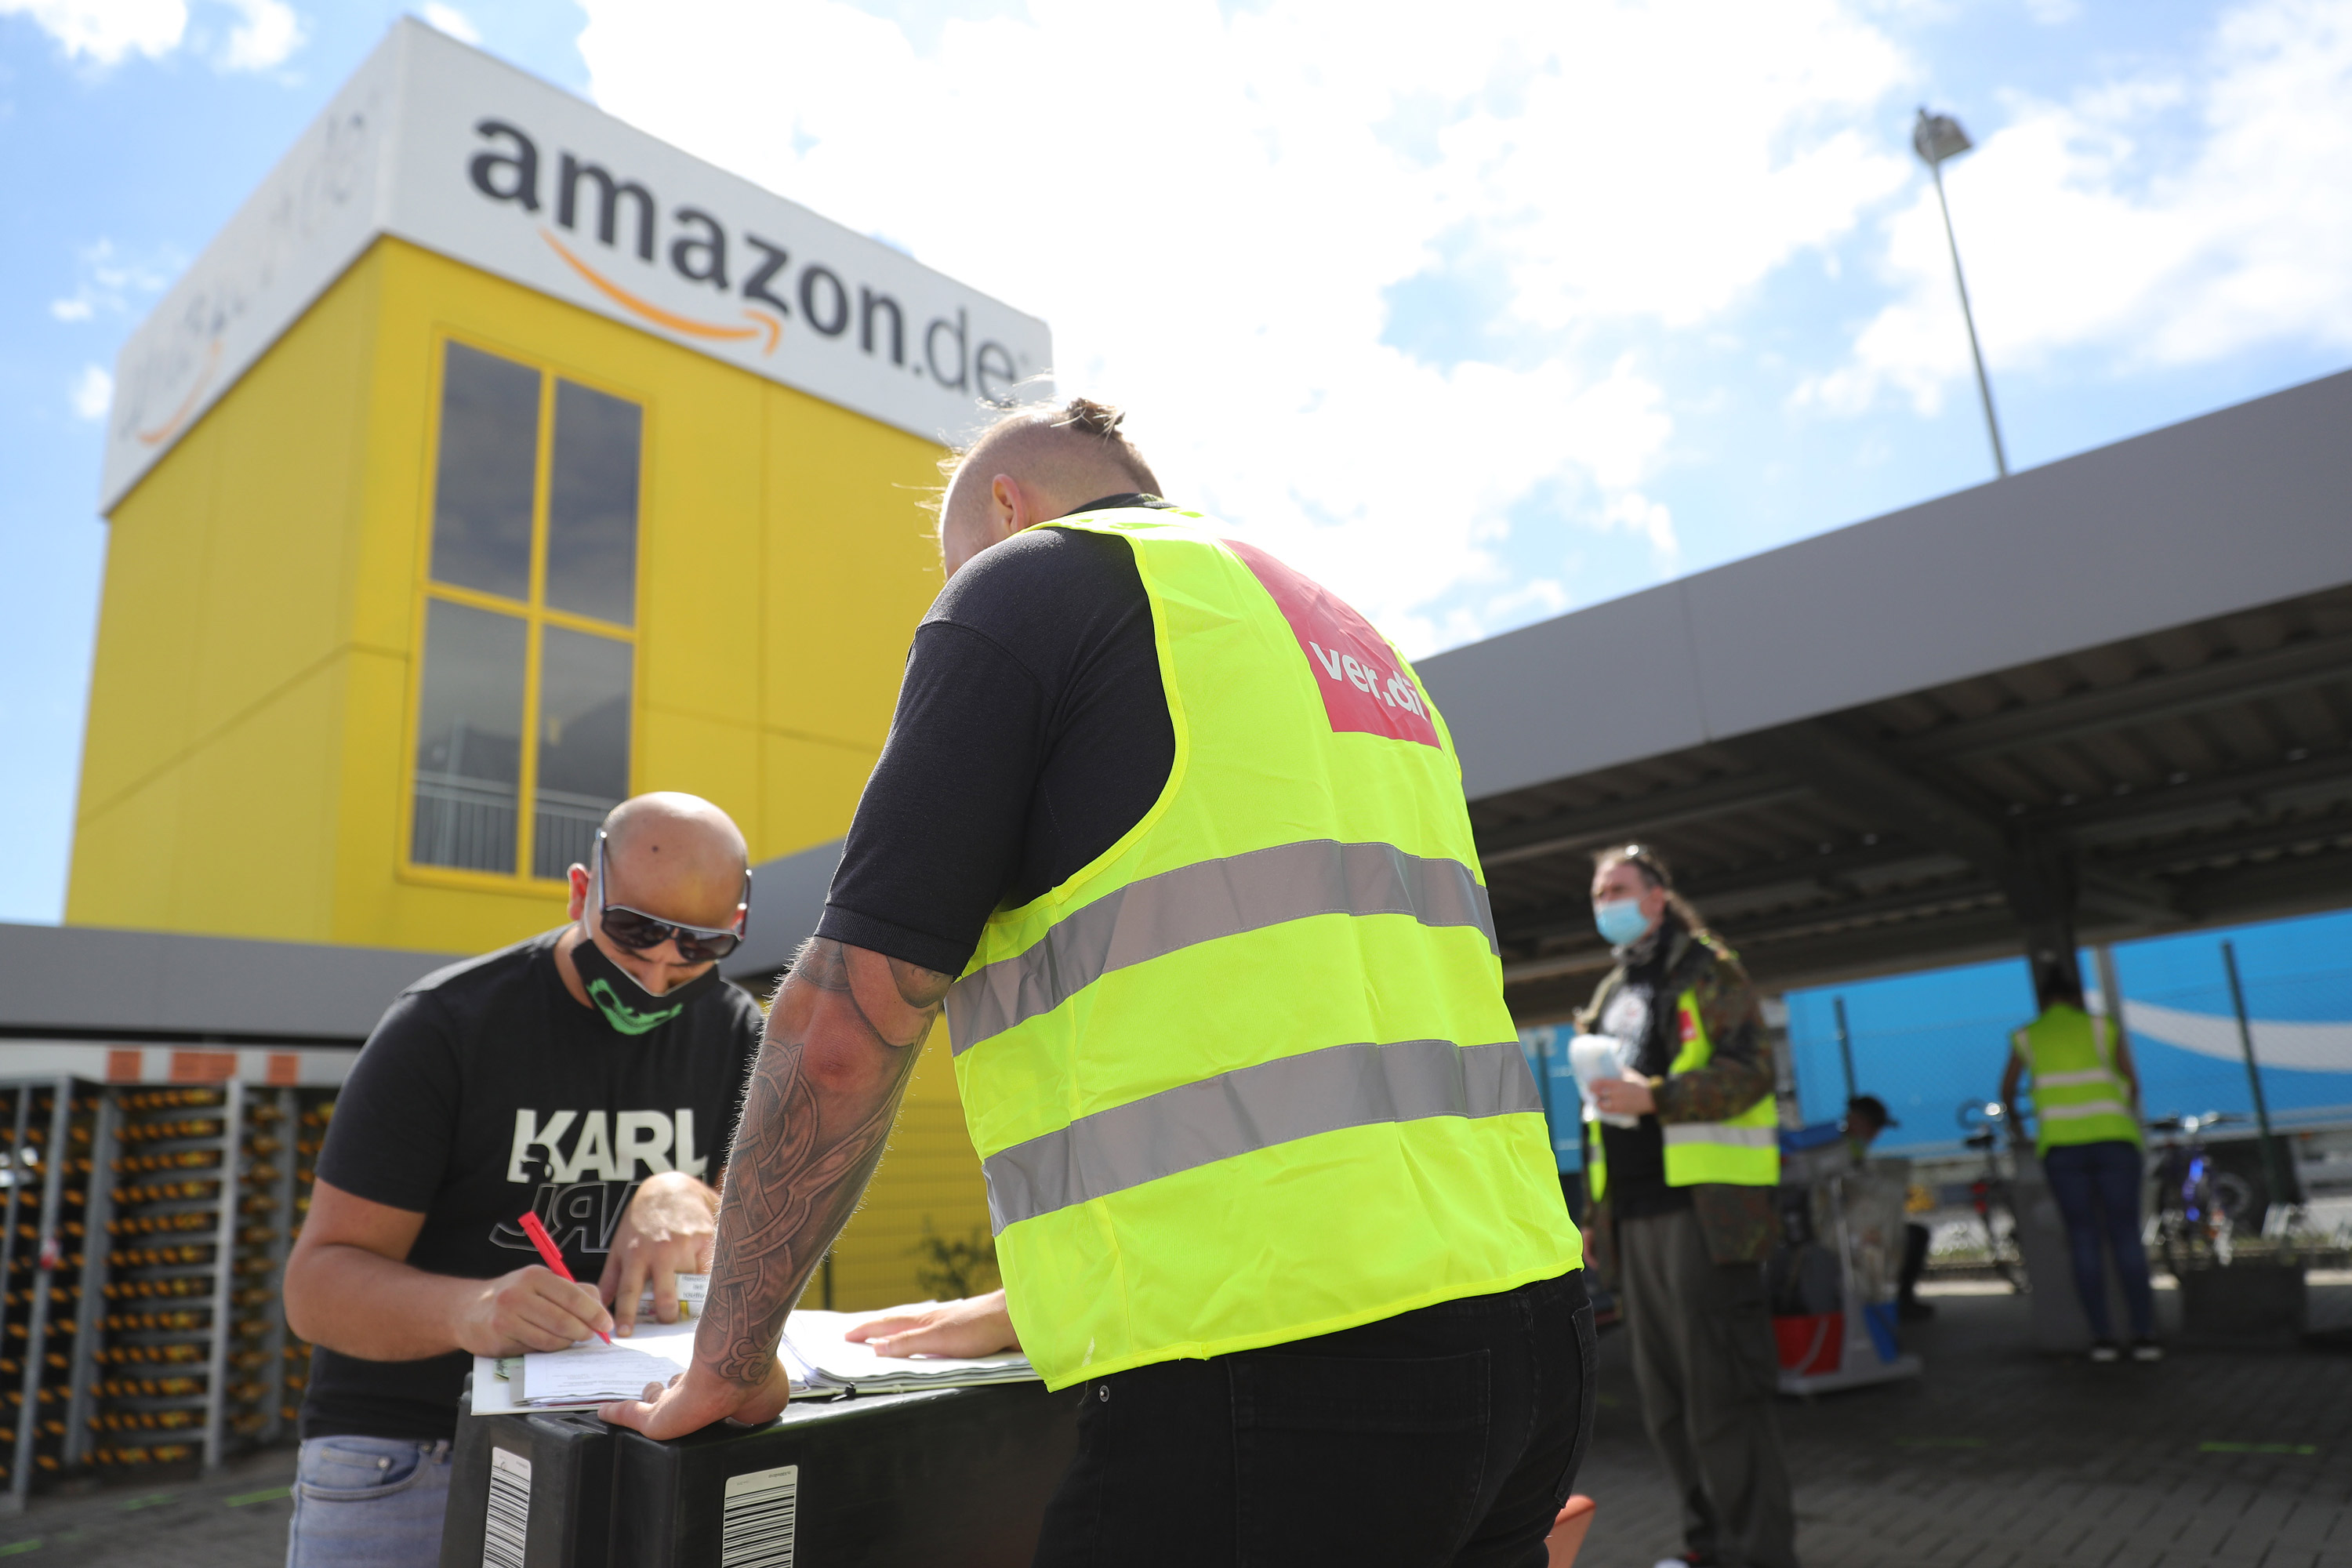 Striking Amazon employees stand outside an Amazon warehouse during the coronavirus pandemic on June 29 in Kobern-Gondorf near Koblenz, Germany.